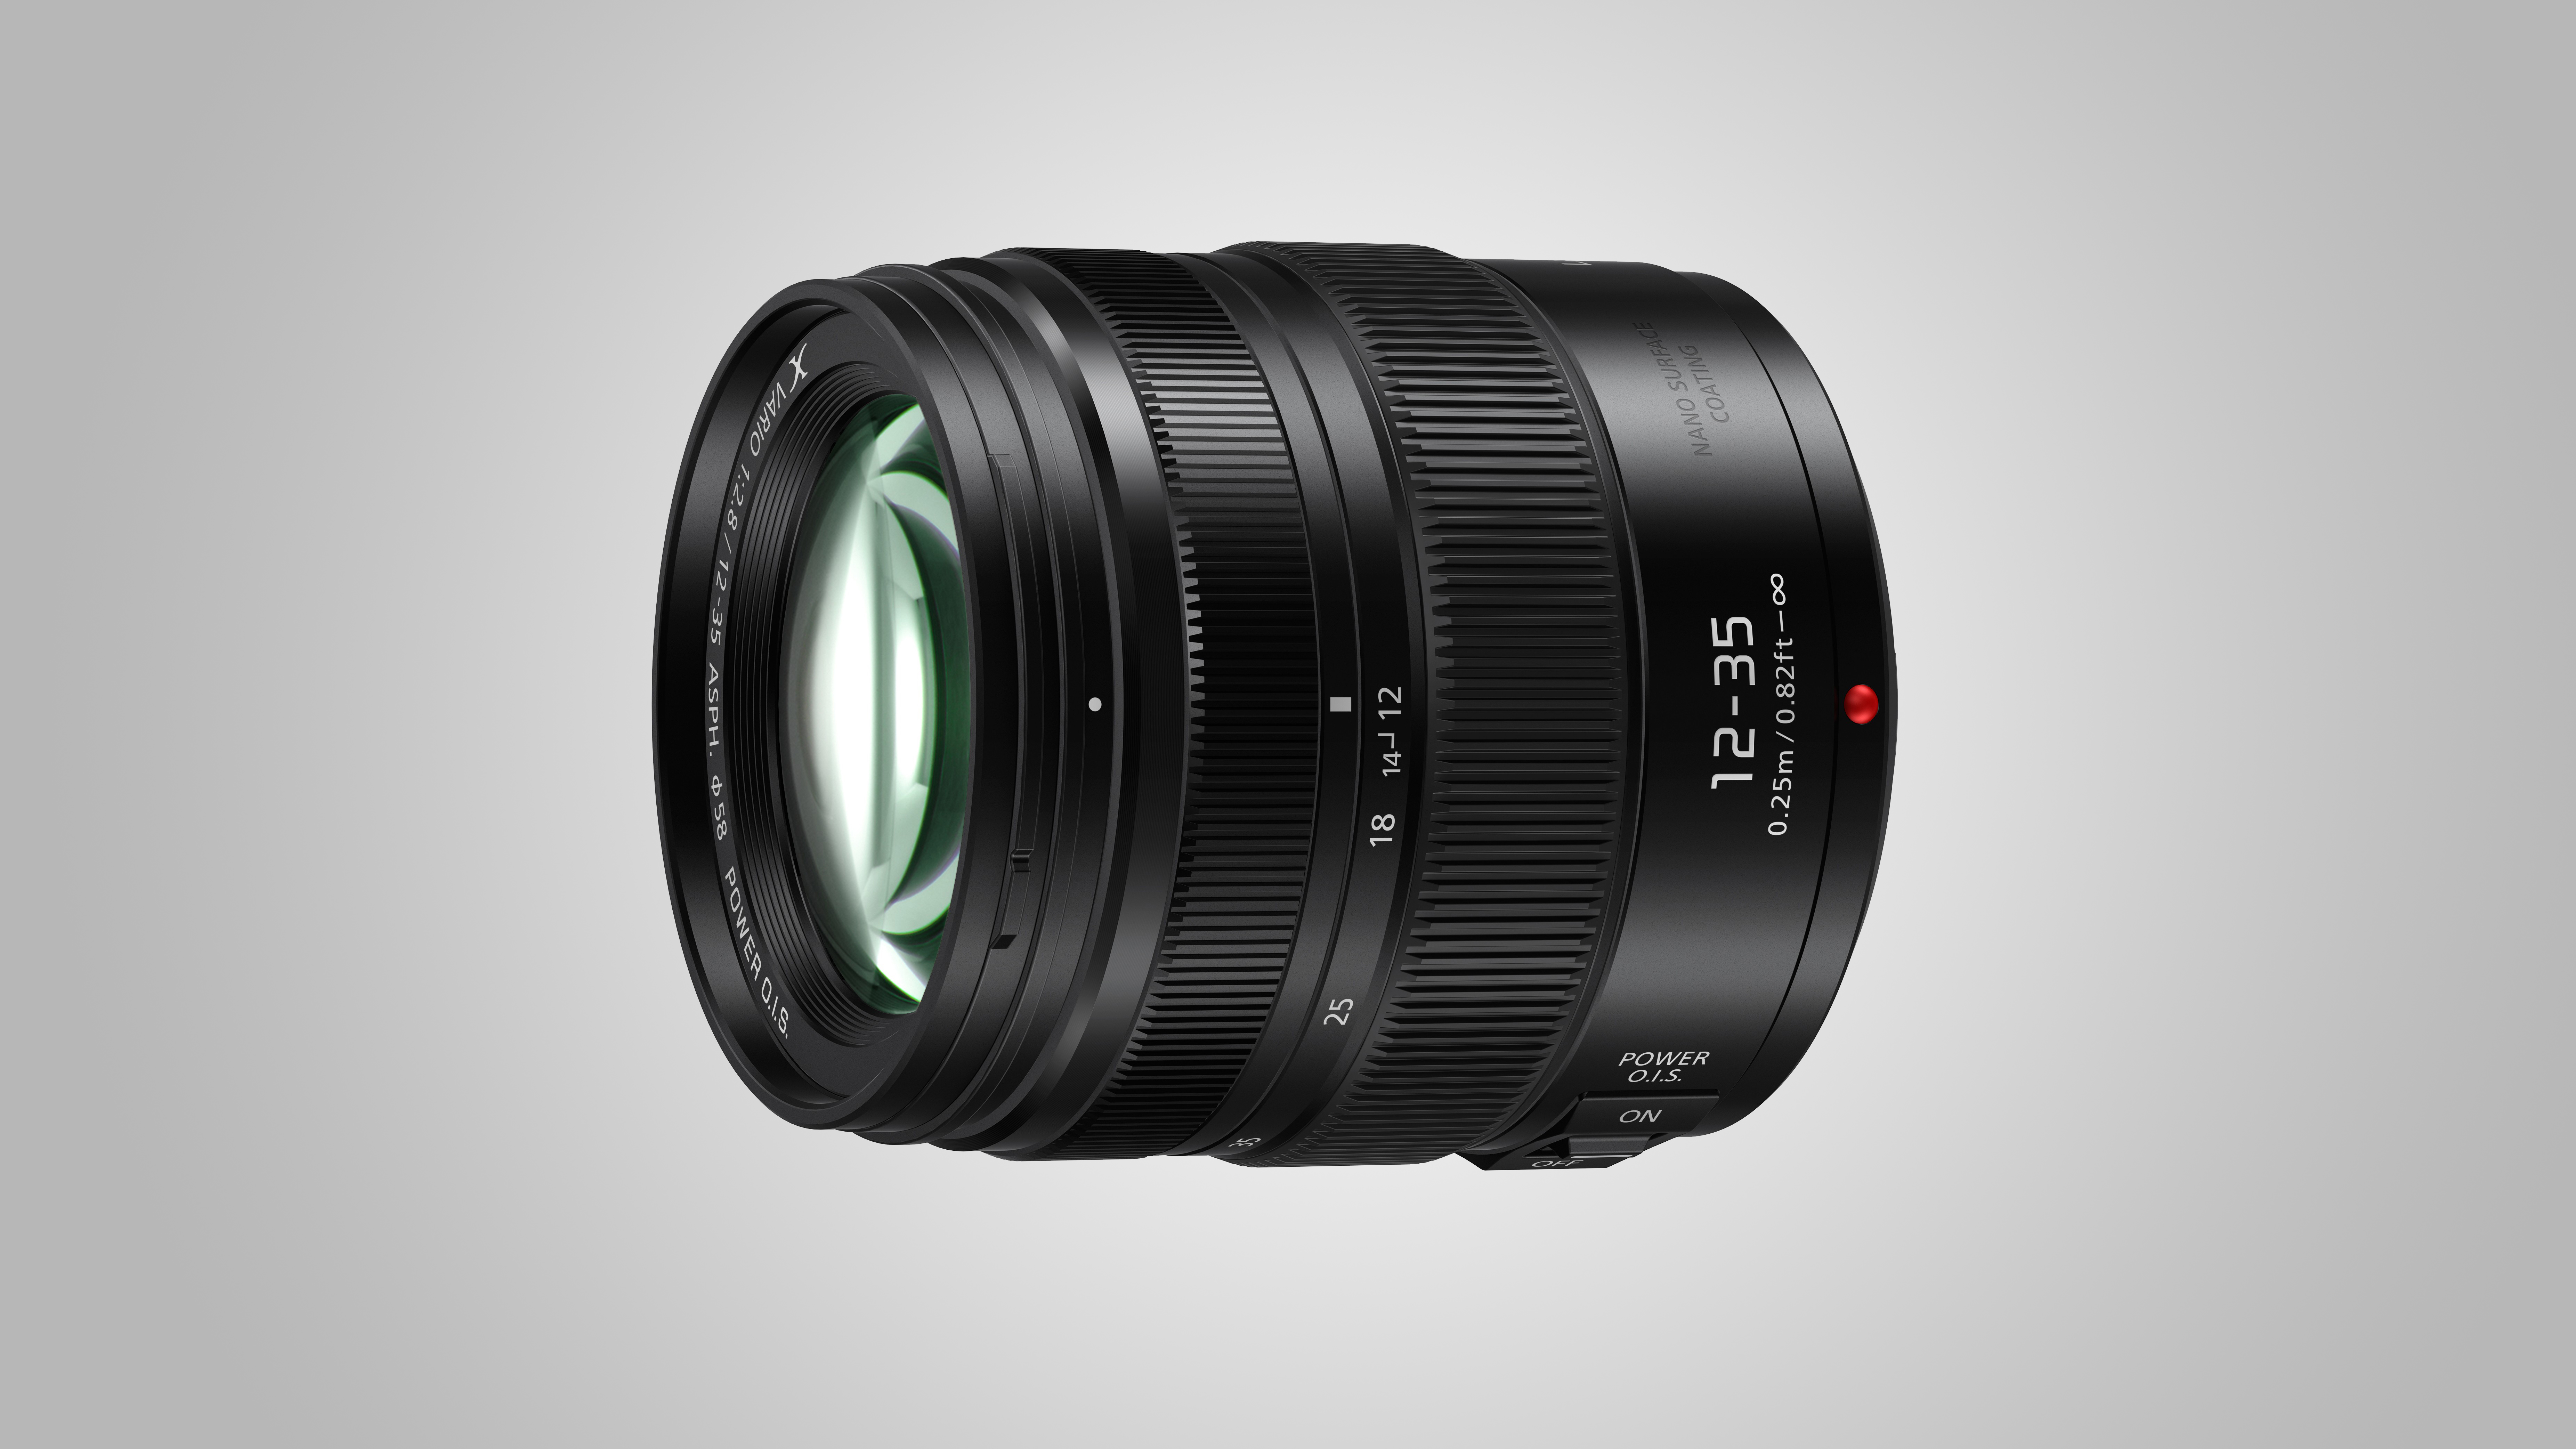 Best Micro Four Thirds Lenses 2018 18 Optics For Your Mft Panasonic Lumix Gh5 Body Lens Leica 12mm F 14 Asph This Gives The Same Kind Of Performance And Versatility As A Pro Grade 24 70mm 28 On Full Frame Camera But Typically An